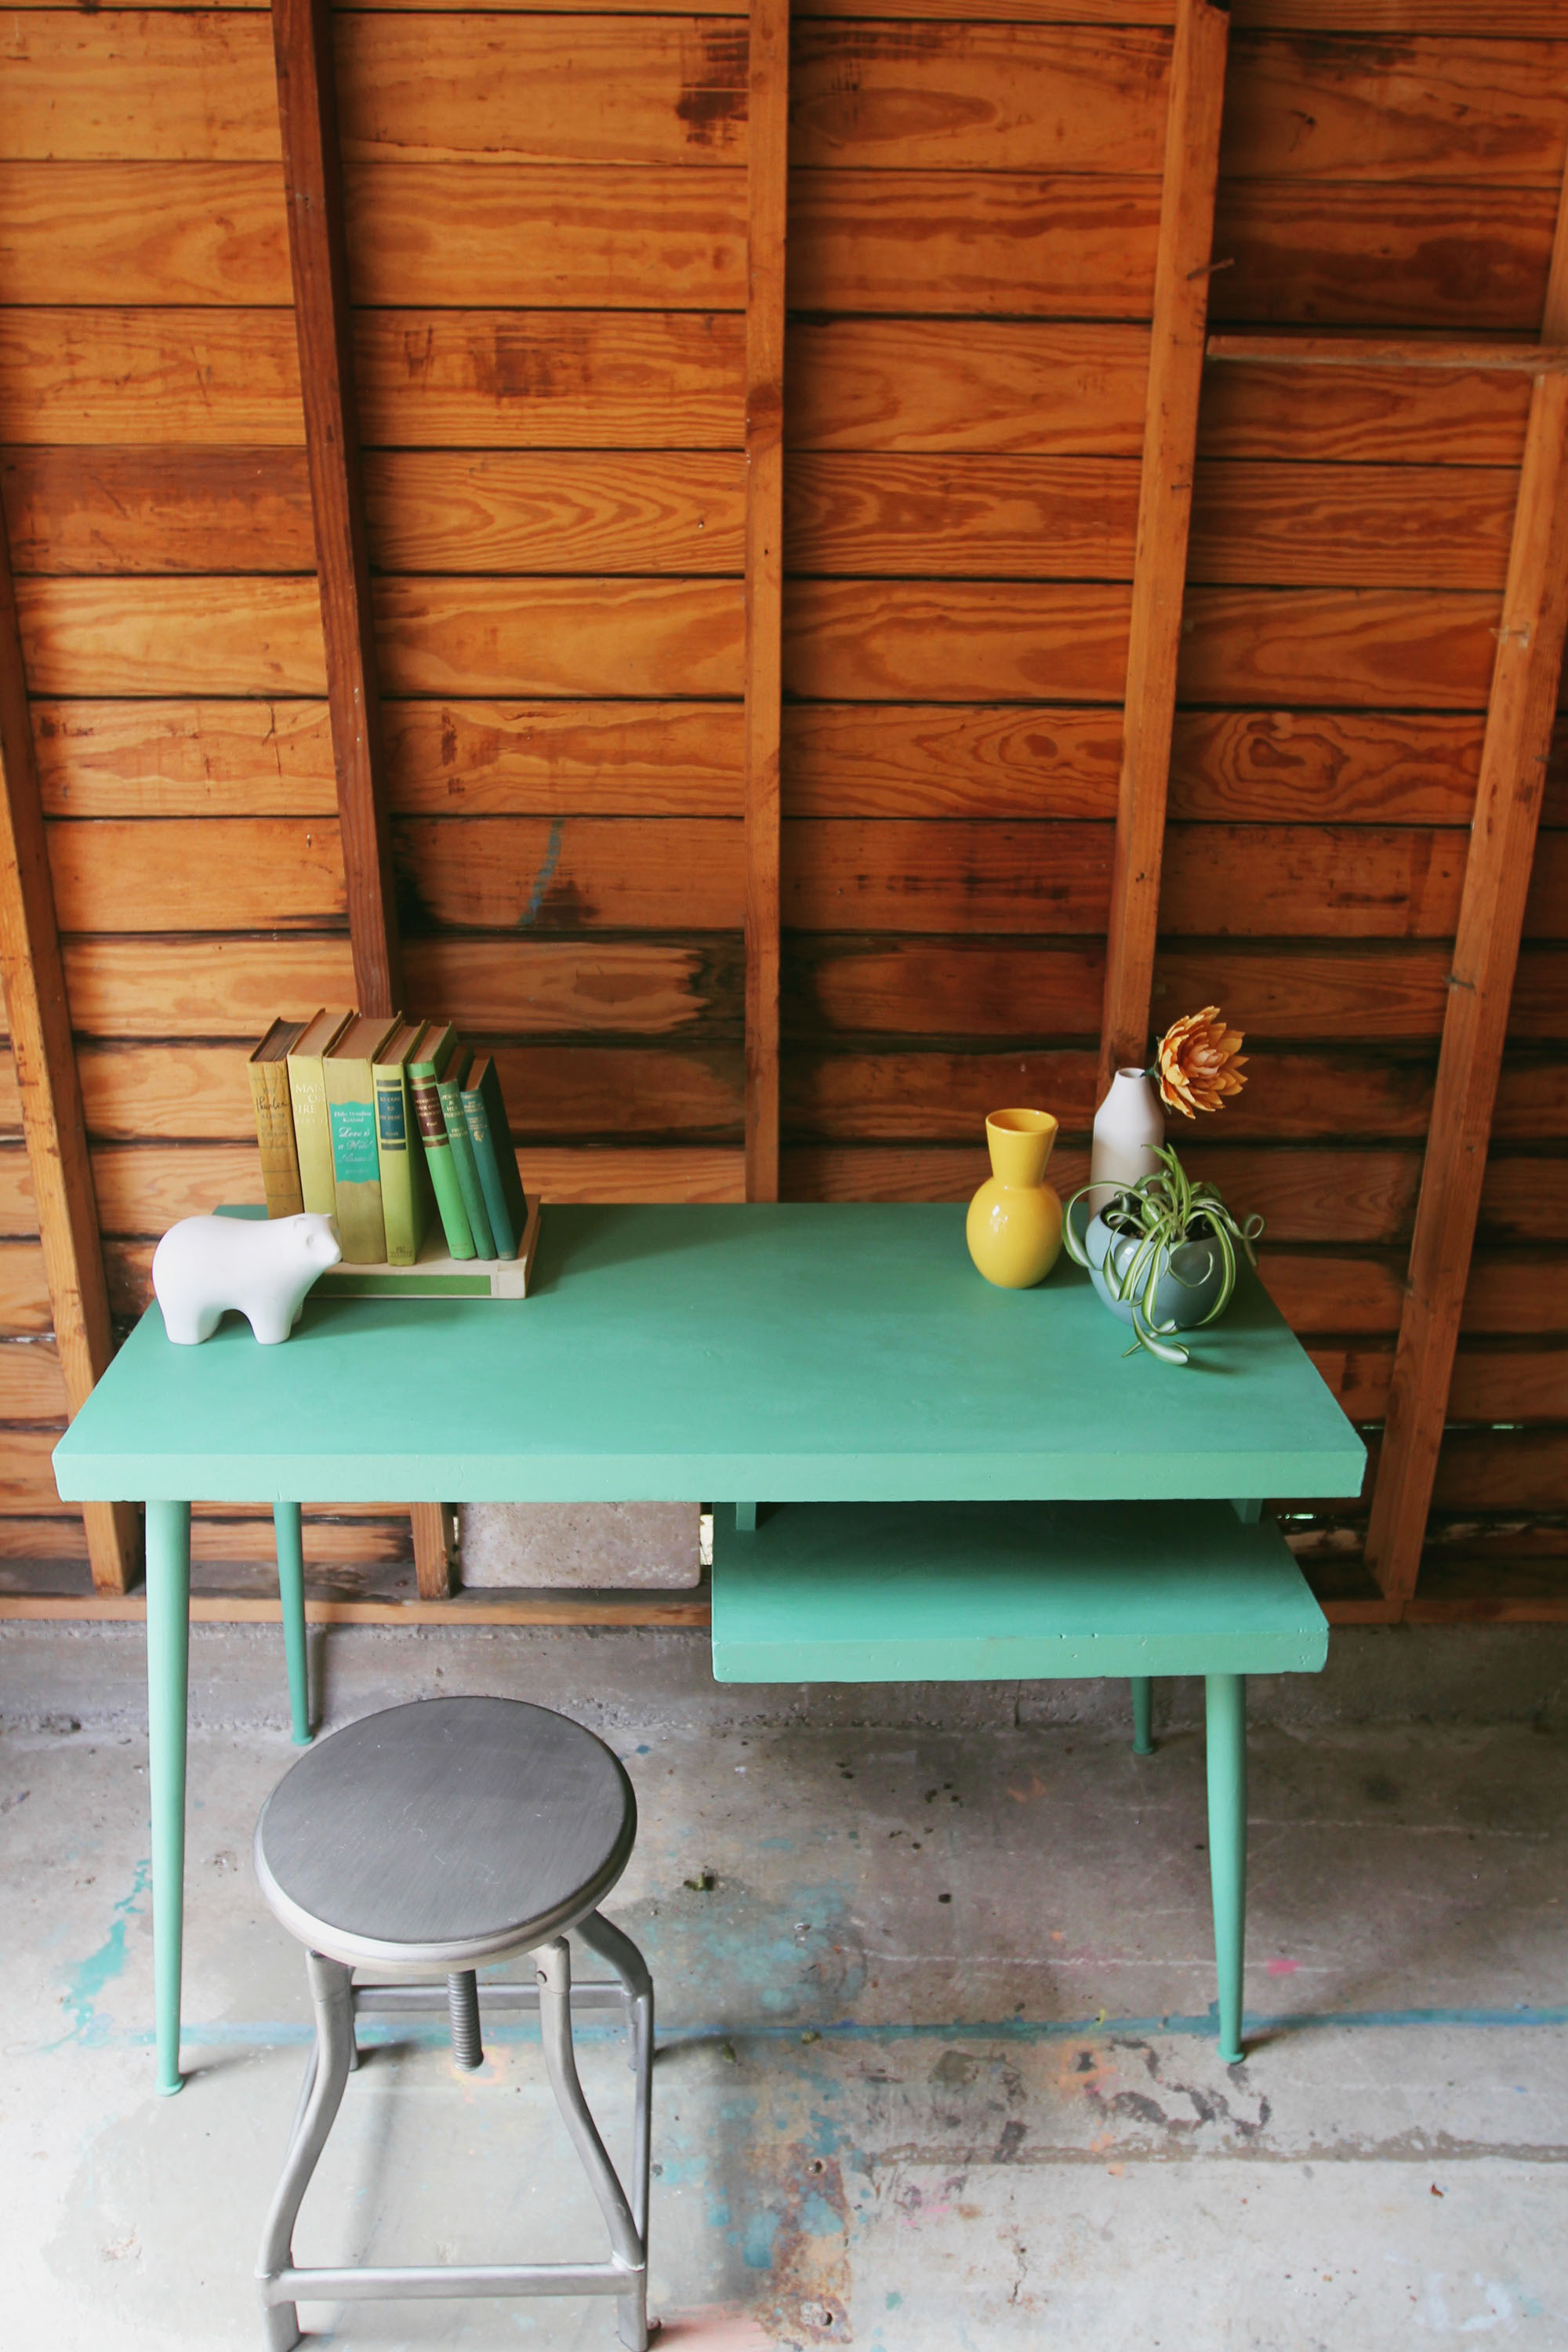 a-simpler-design-dallas-furniture-green-mid-century-desk-jpg2.jpg